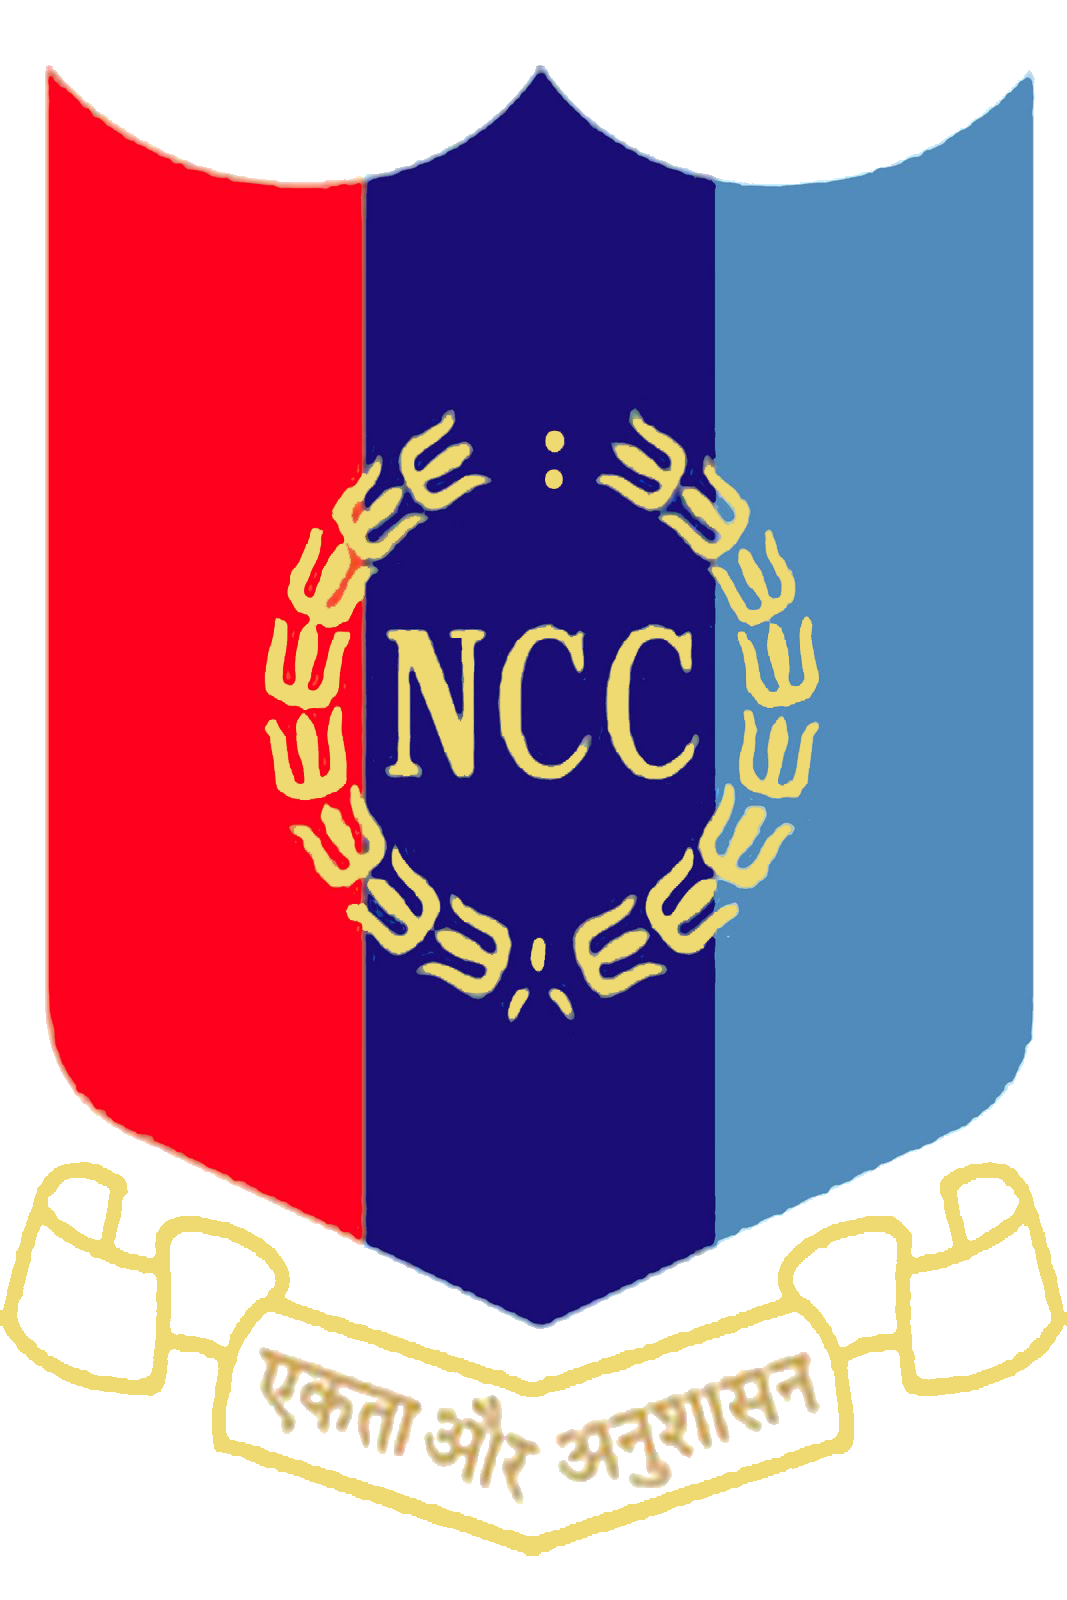 Cadet Png - File:Emblem of National Cadet Corps (India).png - Wikimedia Commons